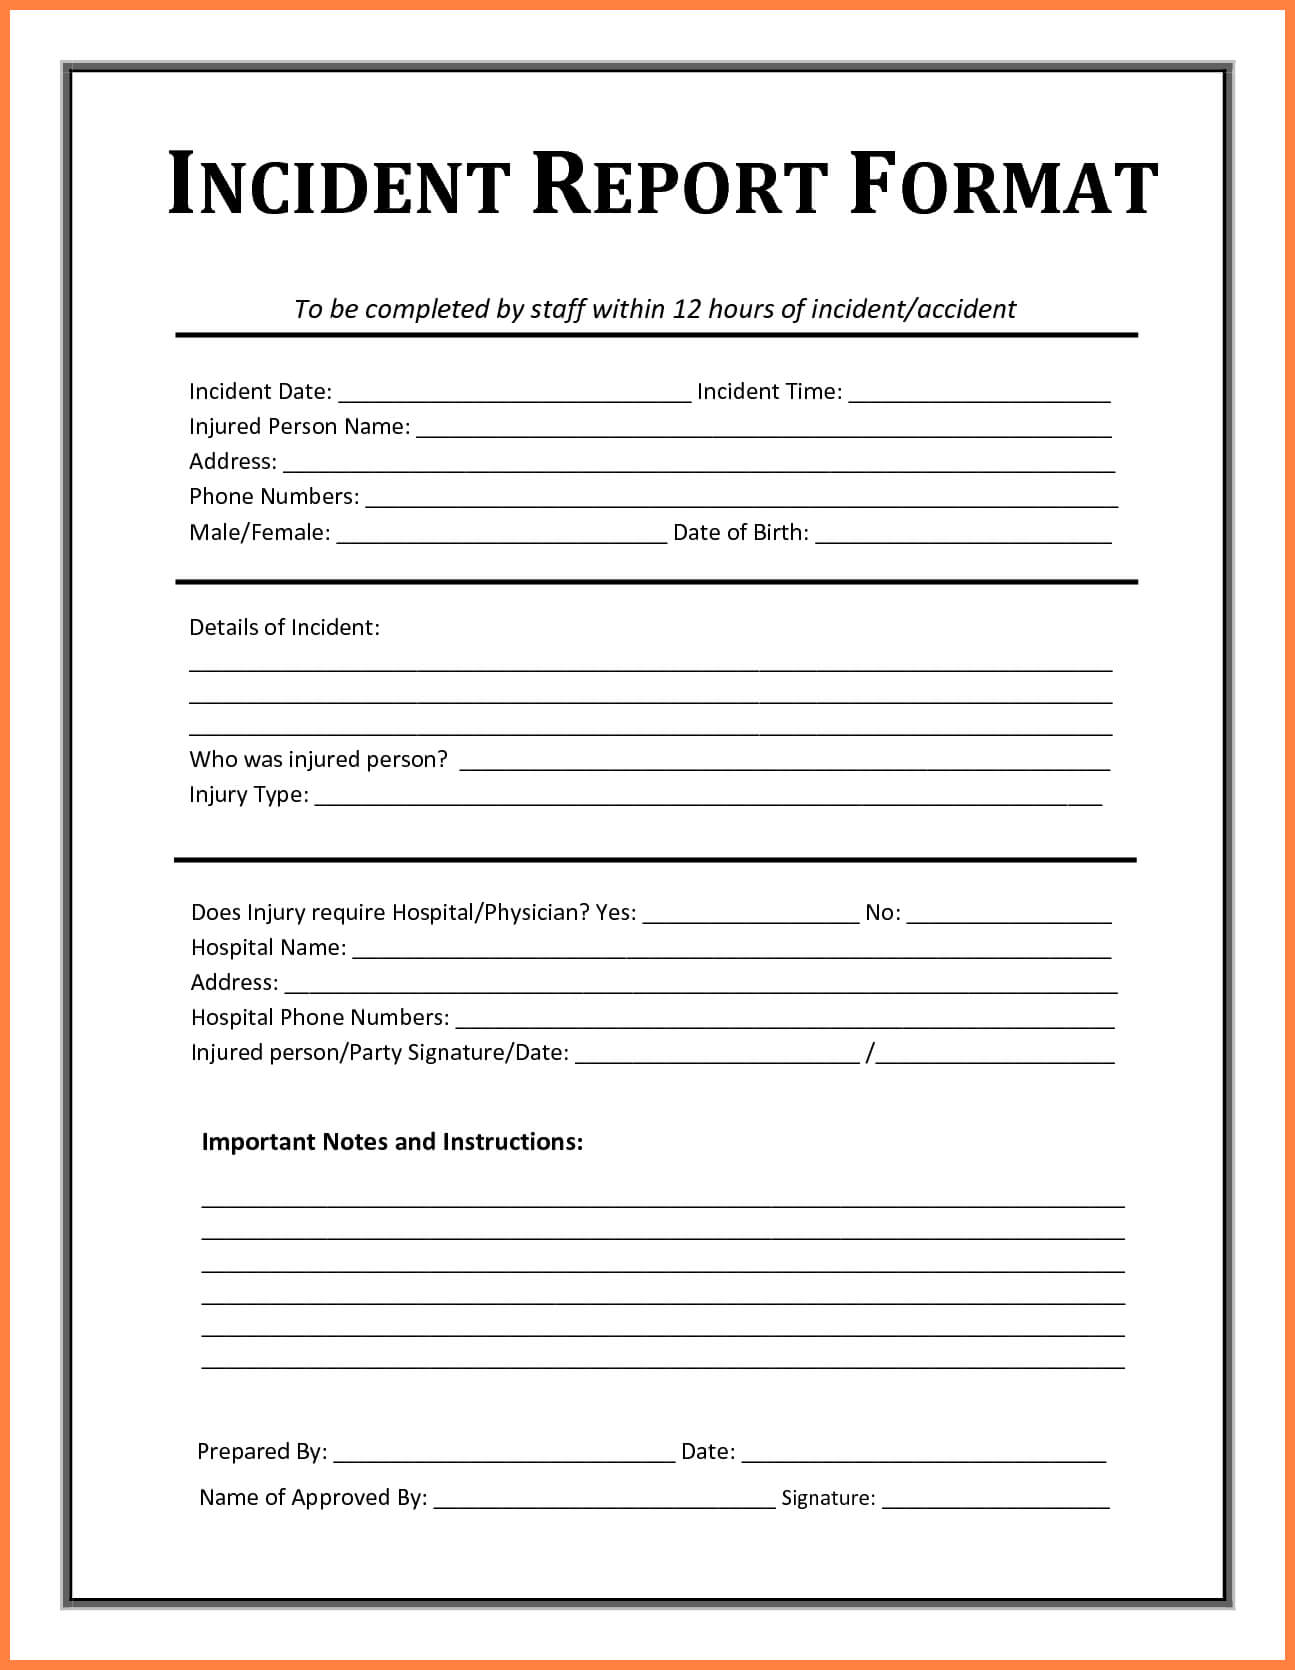 Incident Report Template - Free Incident Report Templates Throughout Generic Incident Report Template